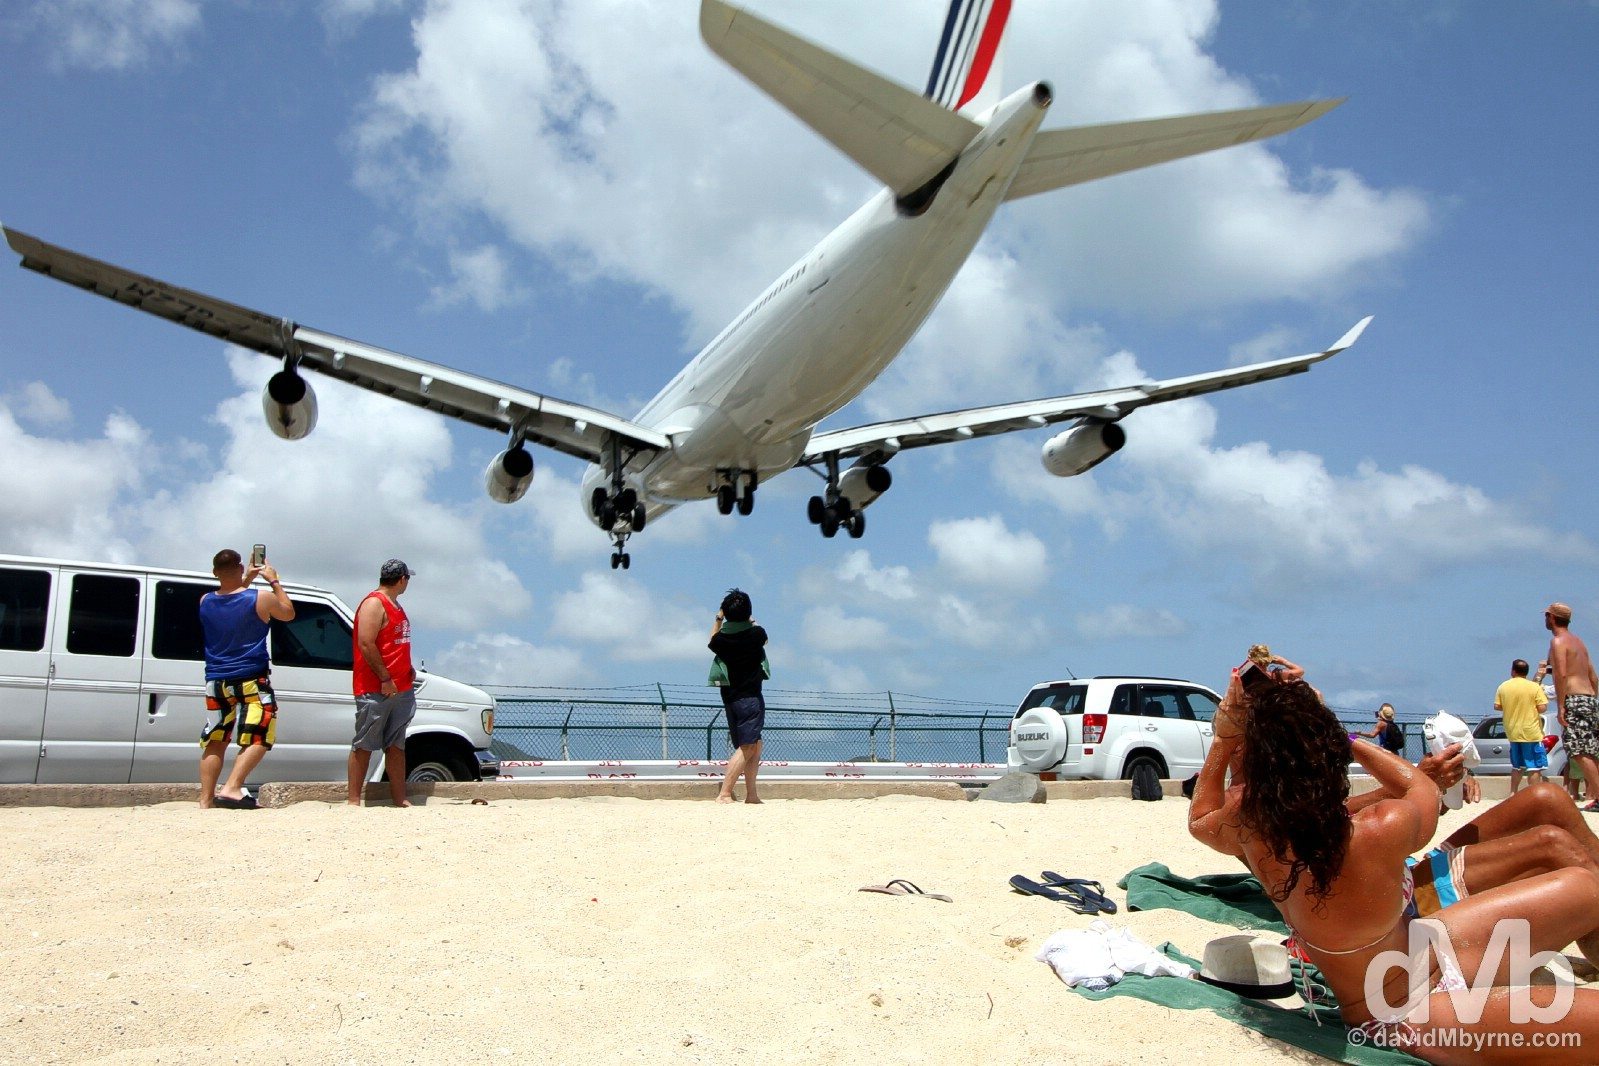 Disturbing sunbathing. An approach to Juliana Airport over the sands of Maho Beach, Sint Maarten, Lesser Antilles. June 8, 2015.